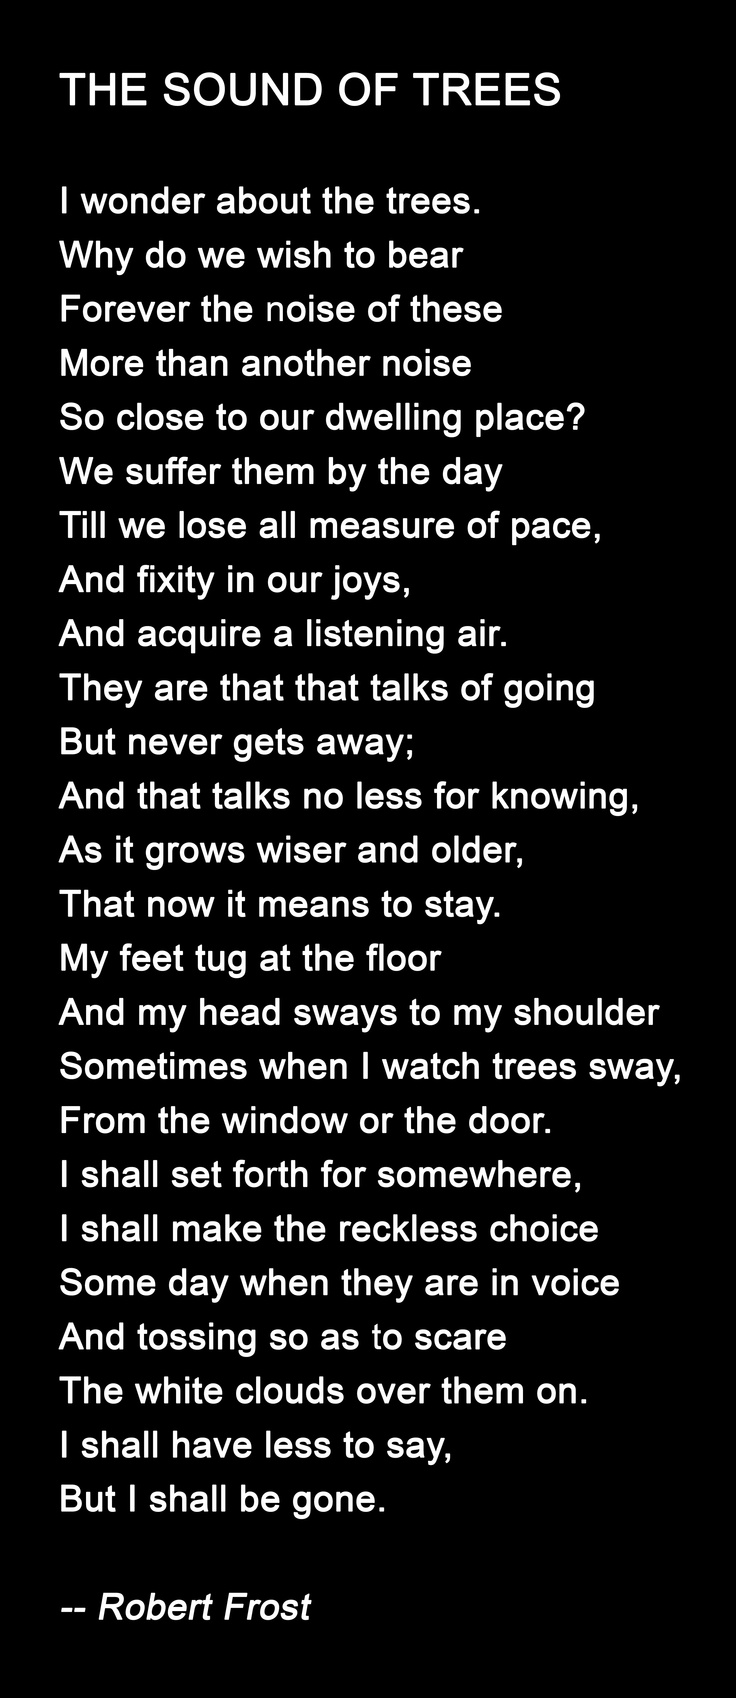 The Sound of Trees by Robert Frost.